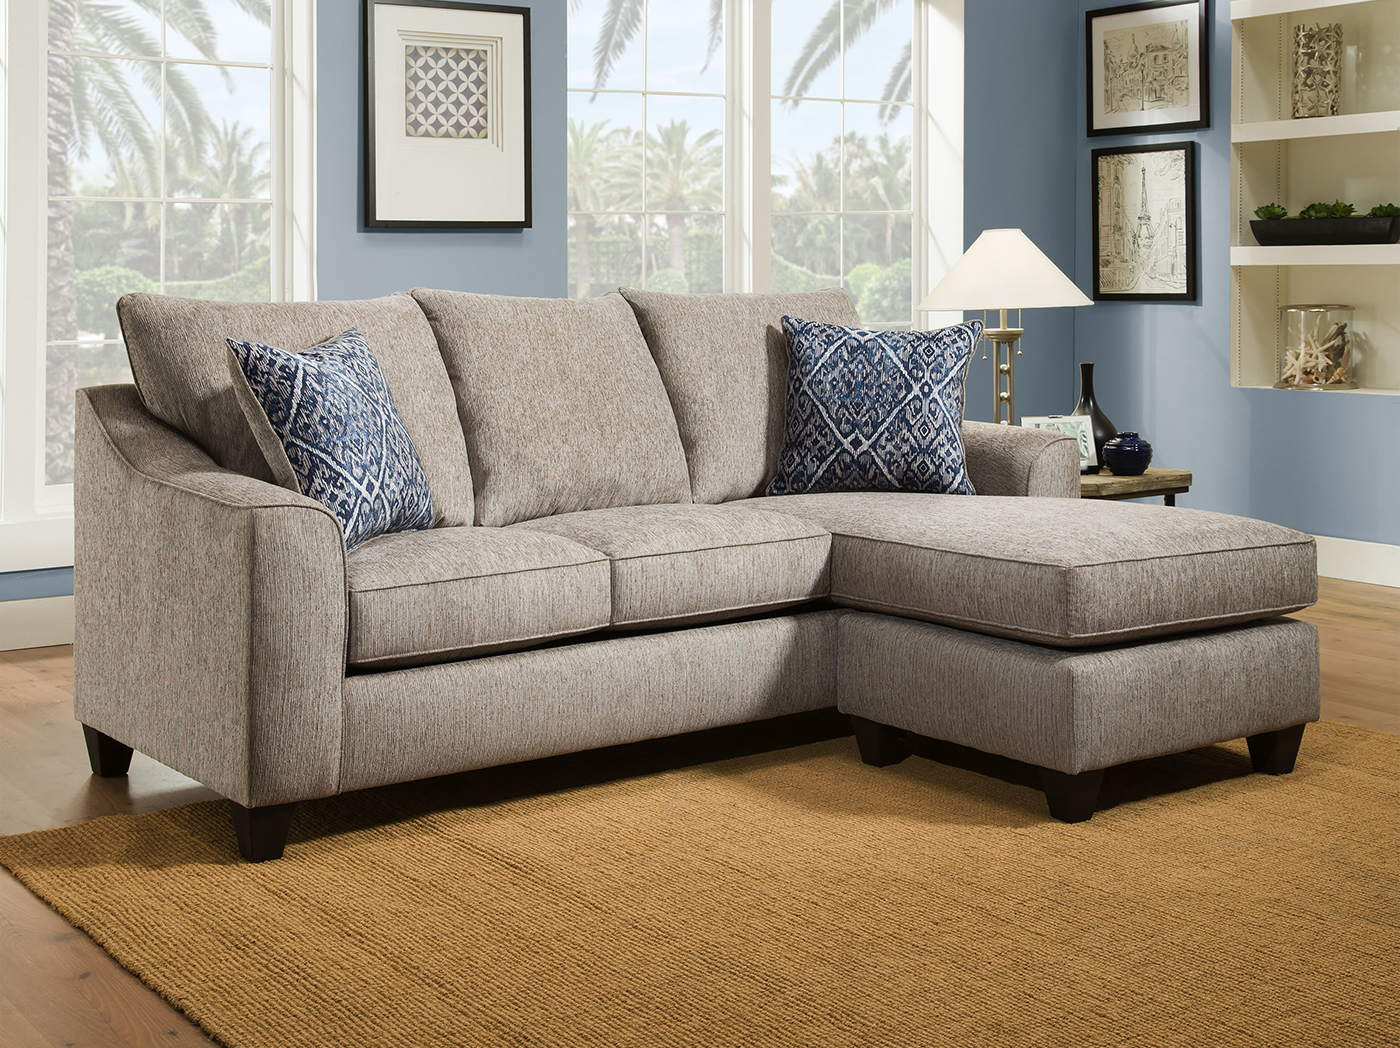 Ayden Chaise Sofa